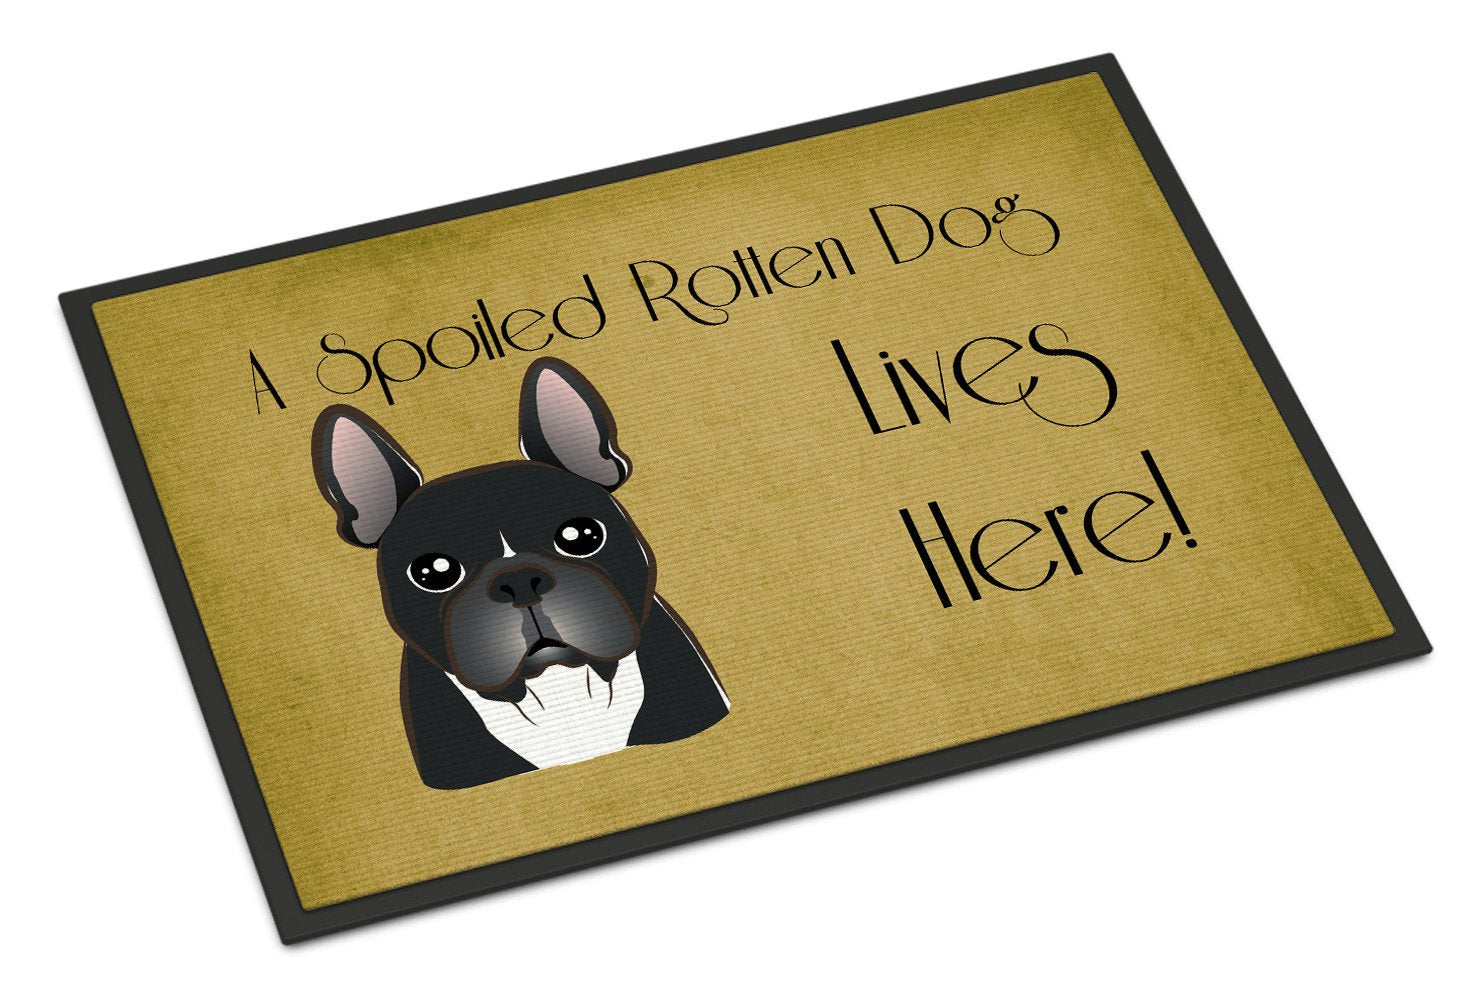 French Bulldog Spoiled Dog Lives Here Indoor or Outdoor Mat 18x27 BB1475MAT - the-store.com